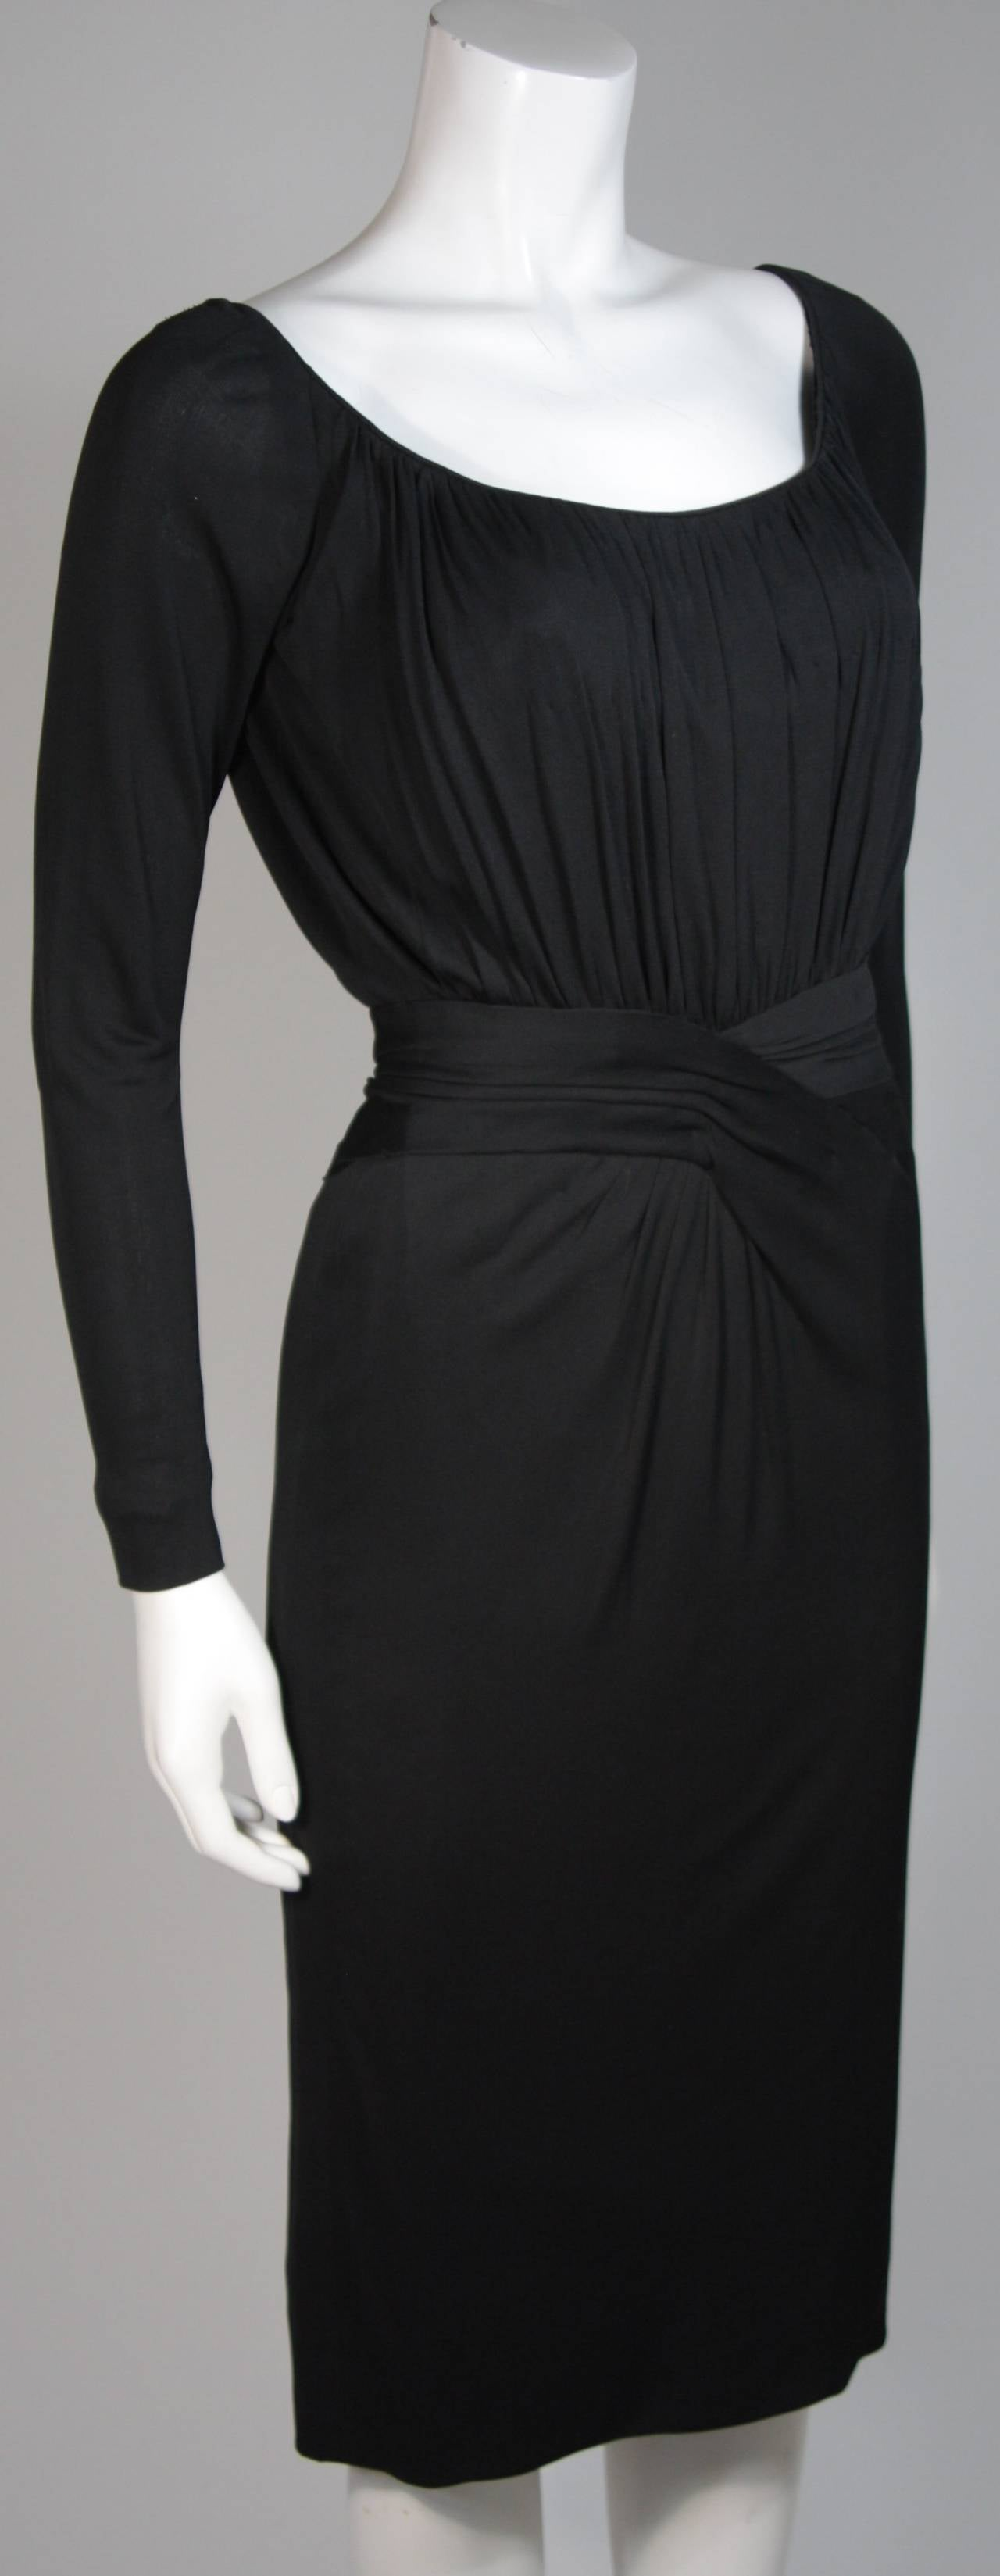 Ceil Chapman Black Silk Crepe Cocktail Dress with Gathers Size 4-6 5